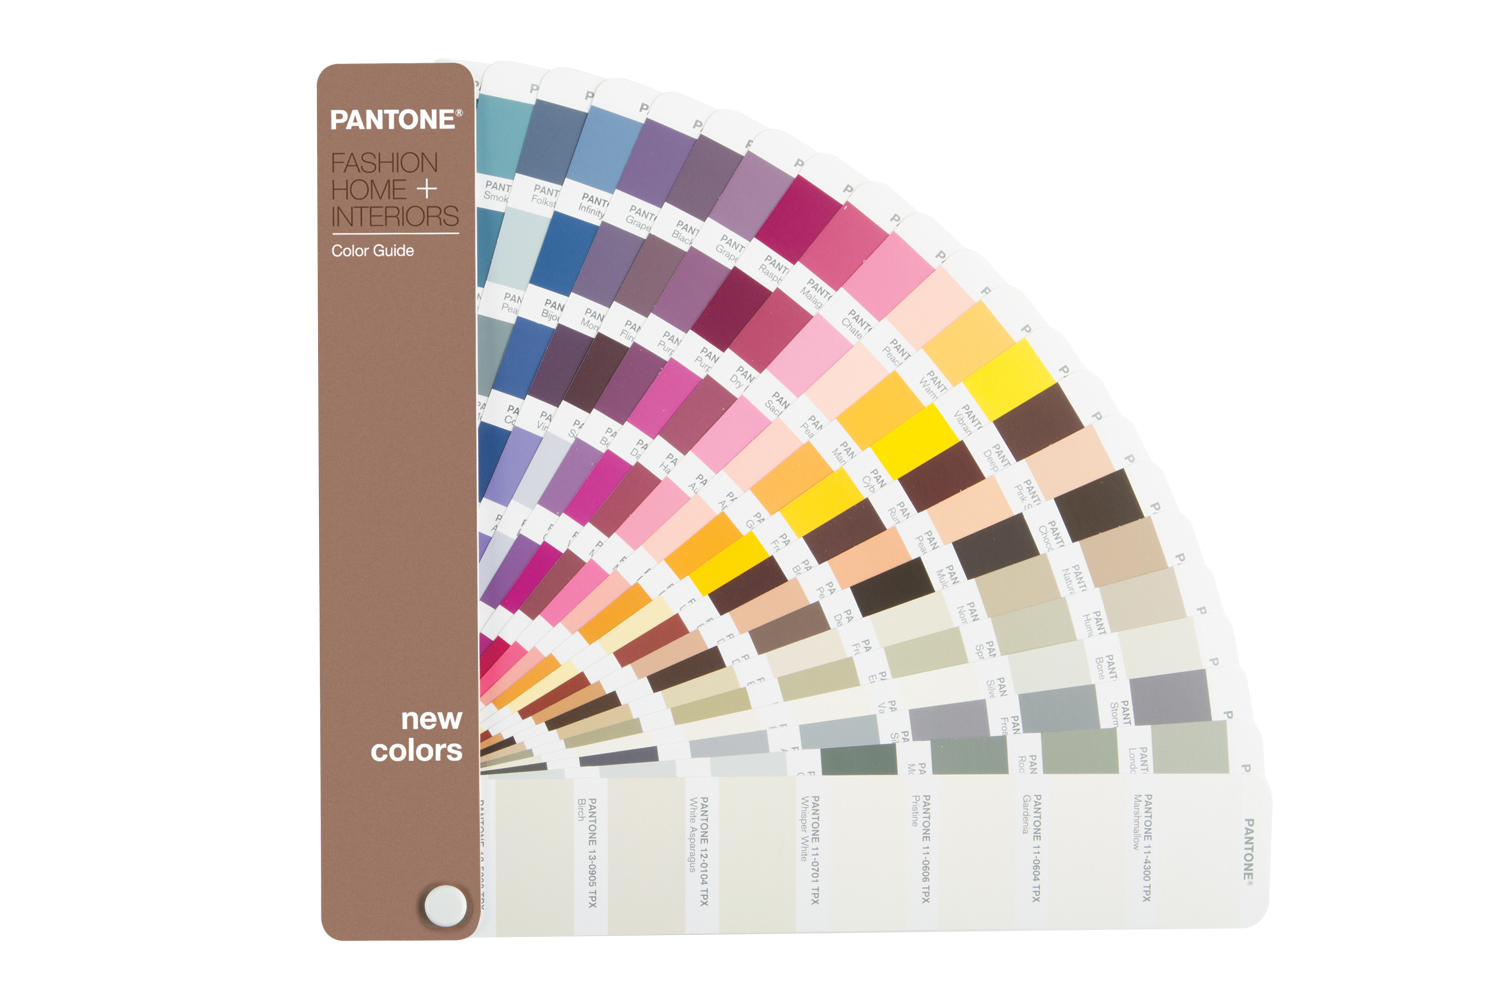 Pantone FHIP Guide Supplement